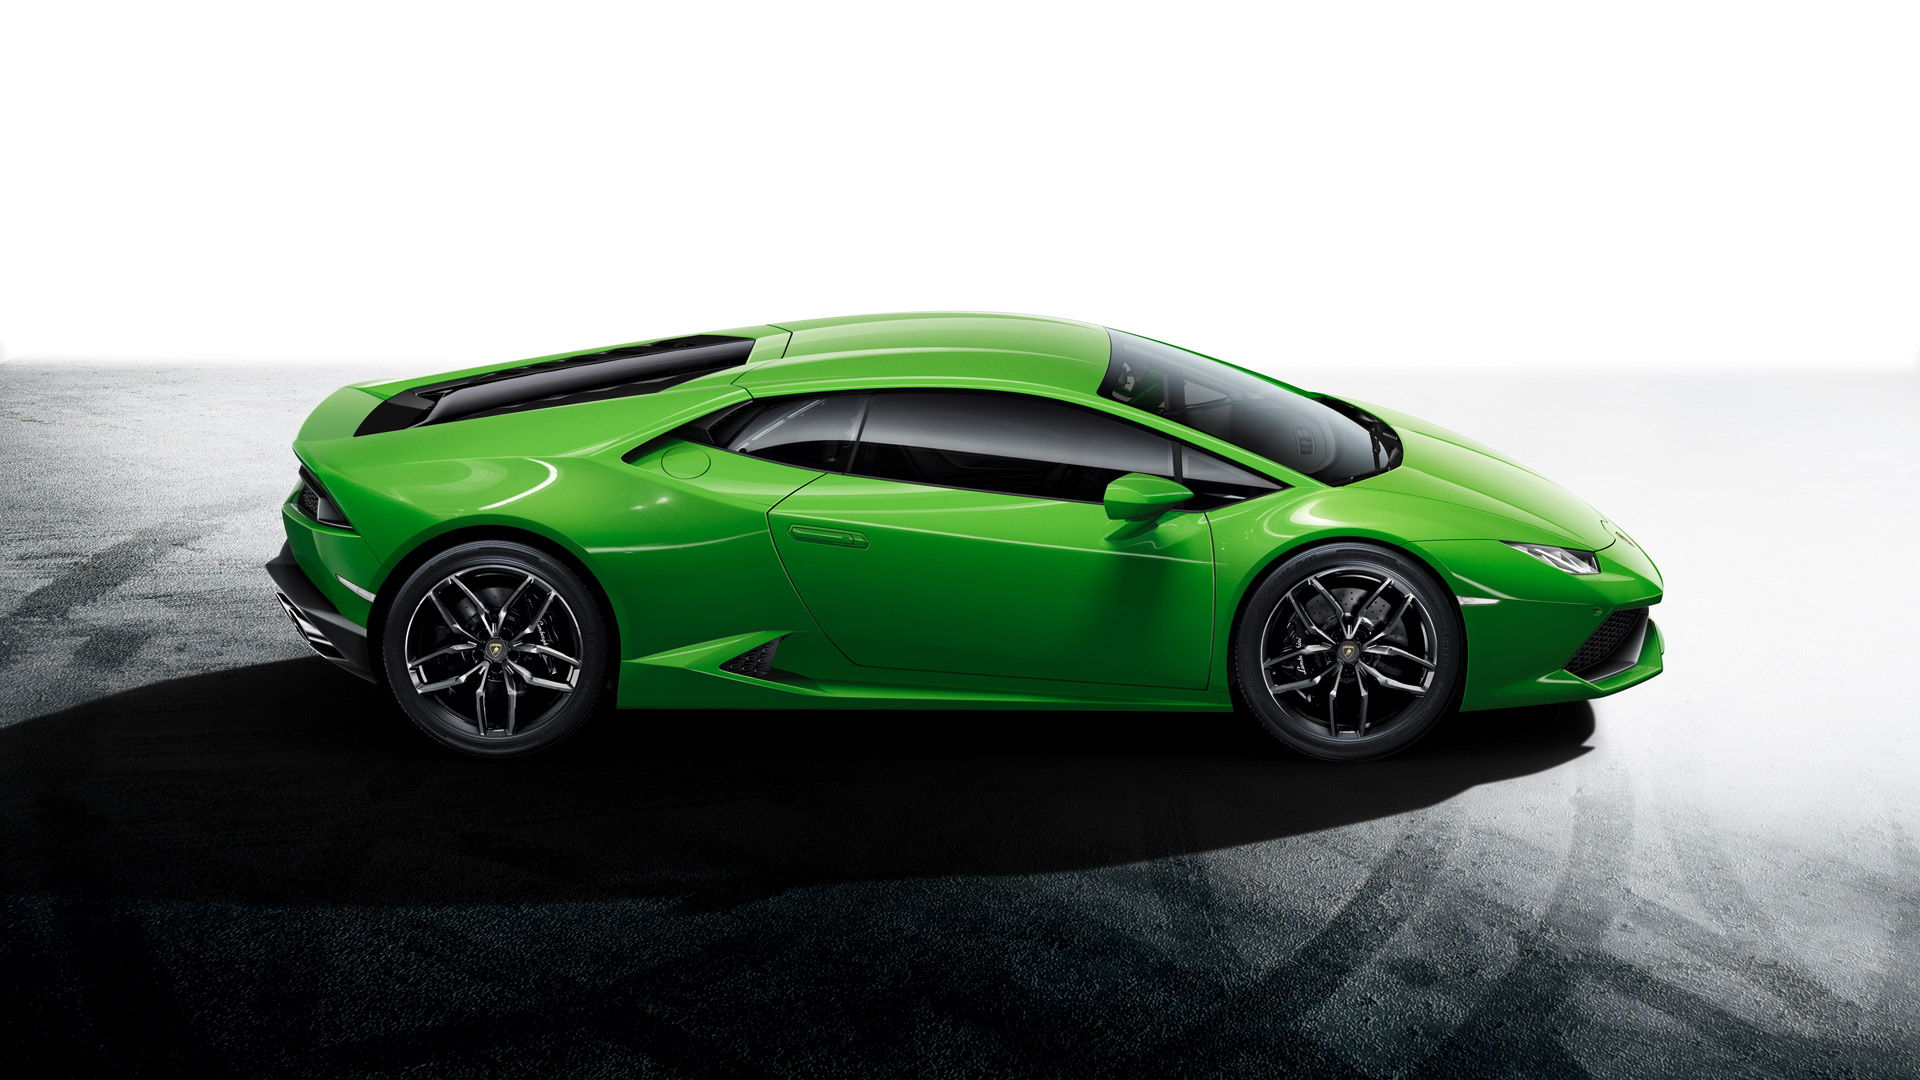 Side View on a Green Lamborghini